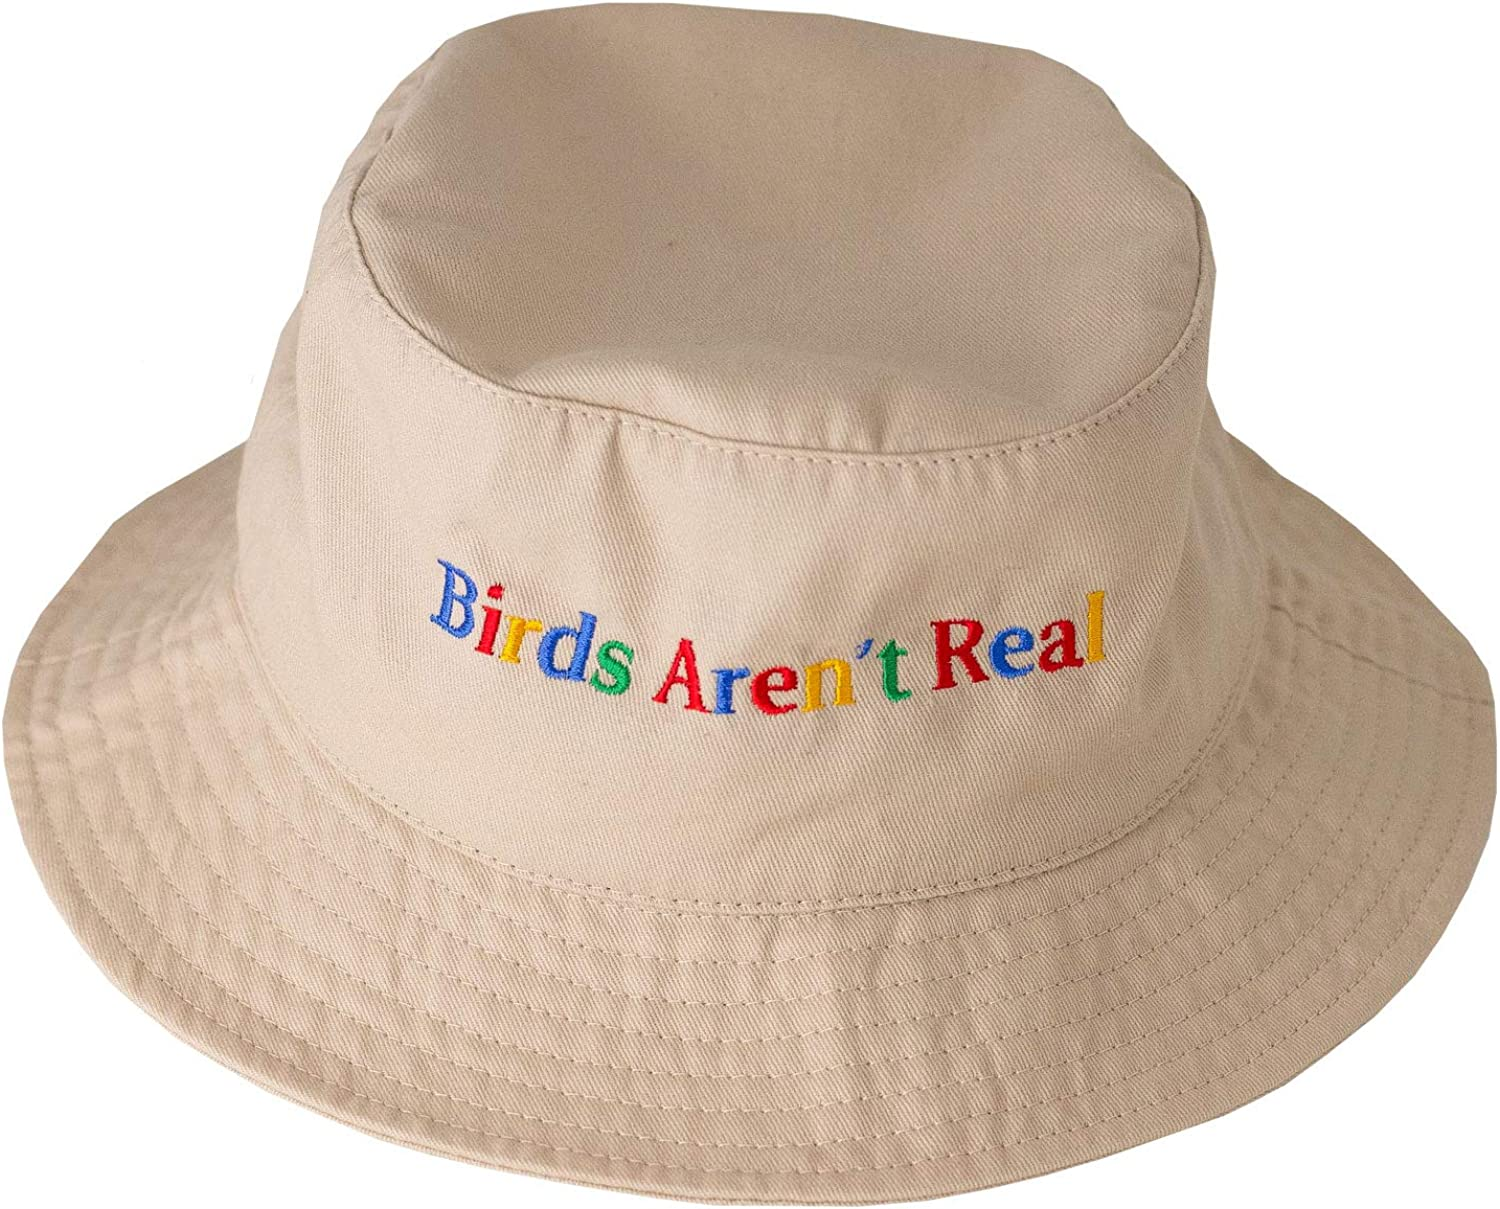 Birds Aren't Real Bucket Hat in Tan : Clothing, Shoes & Jewelry